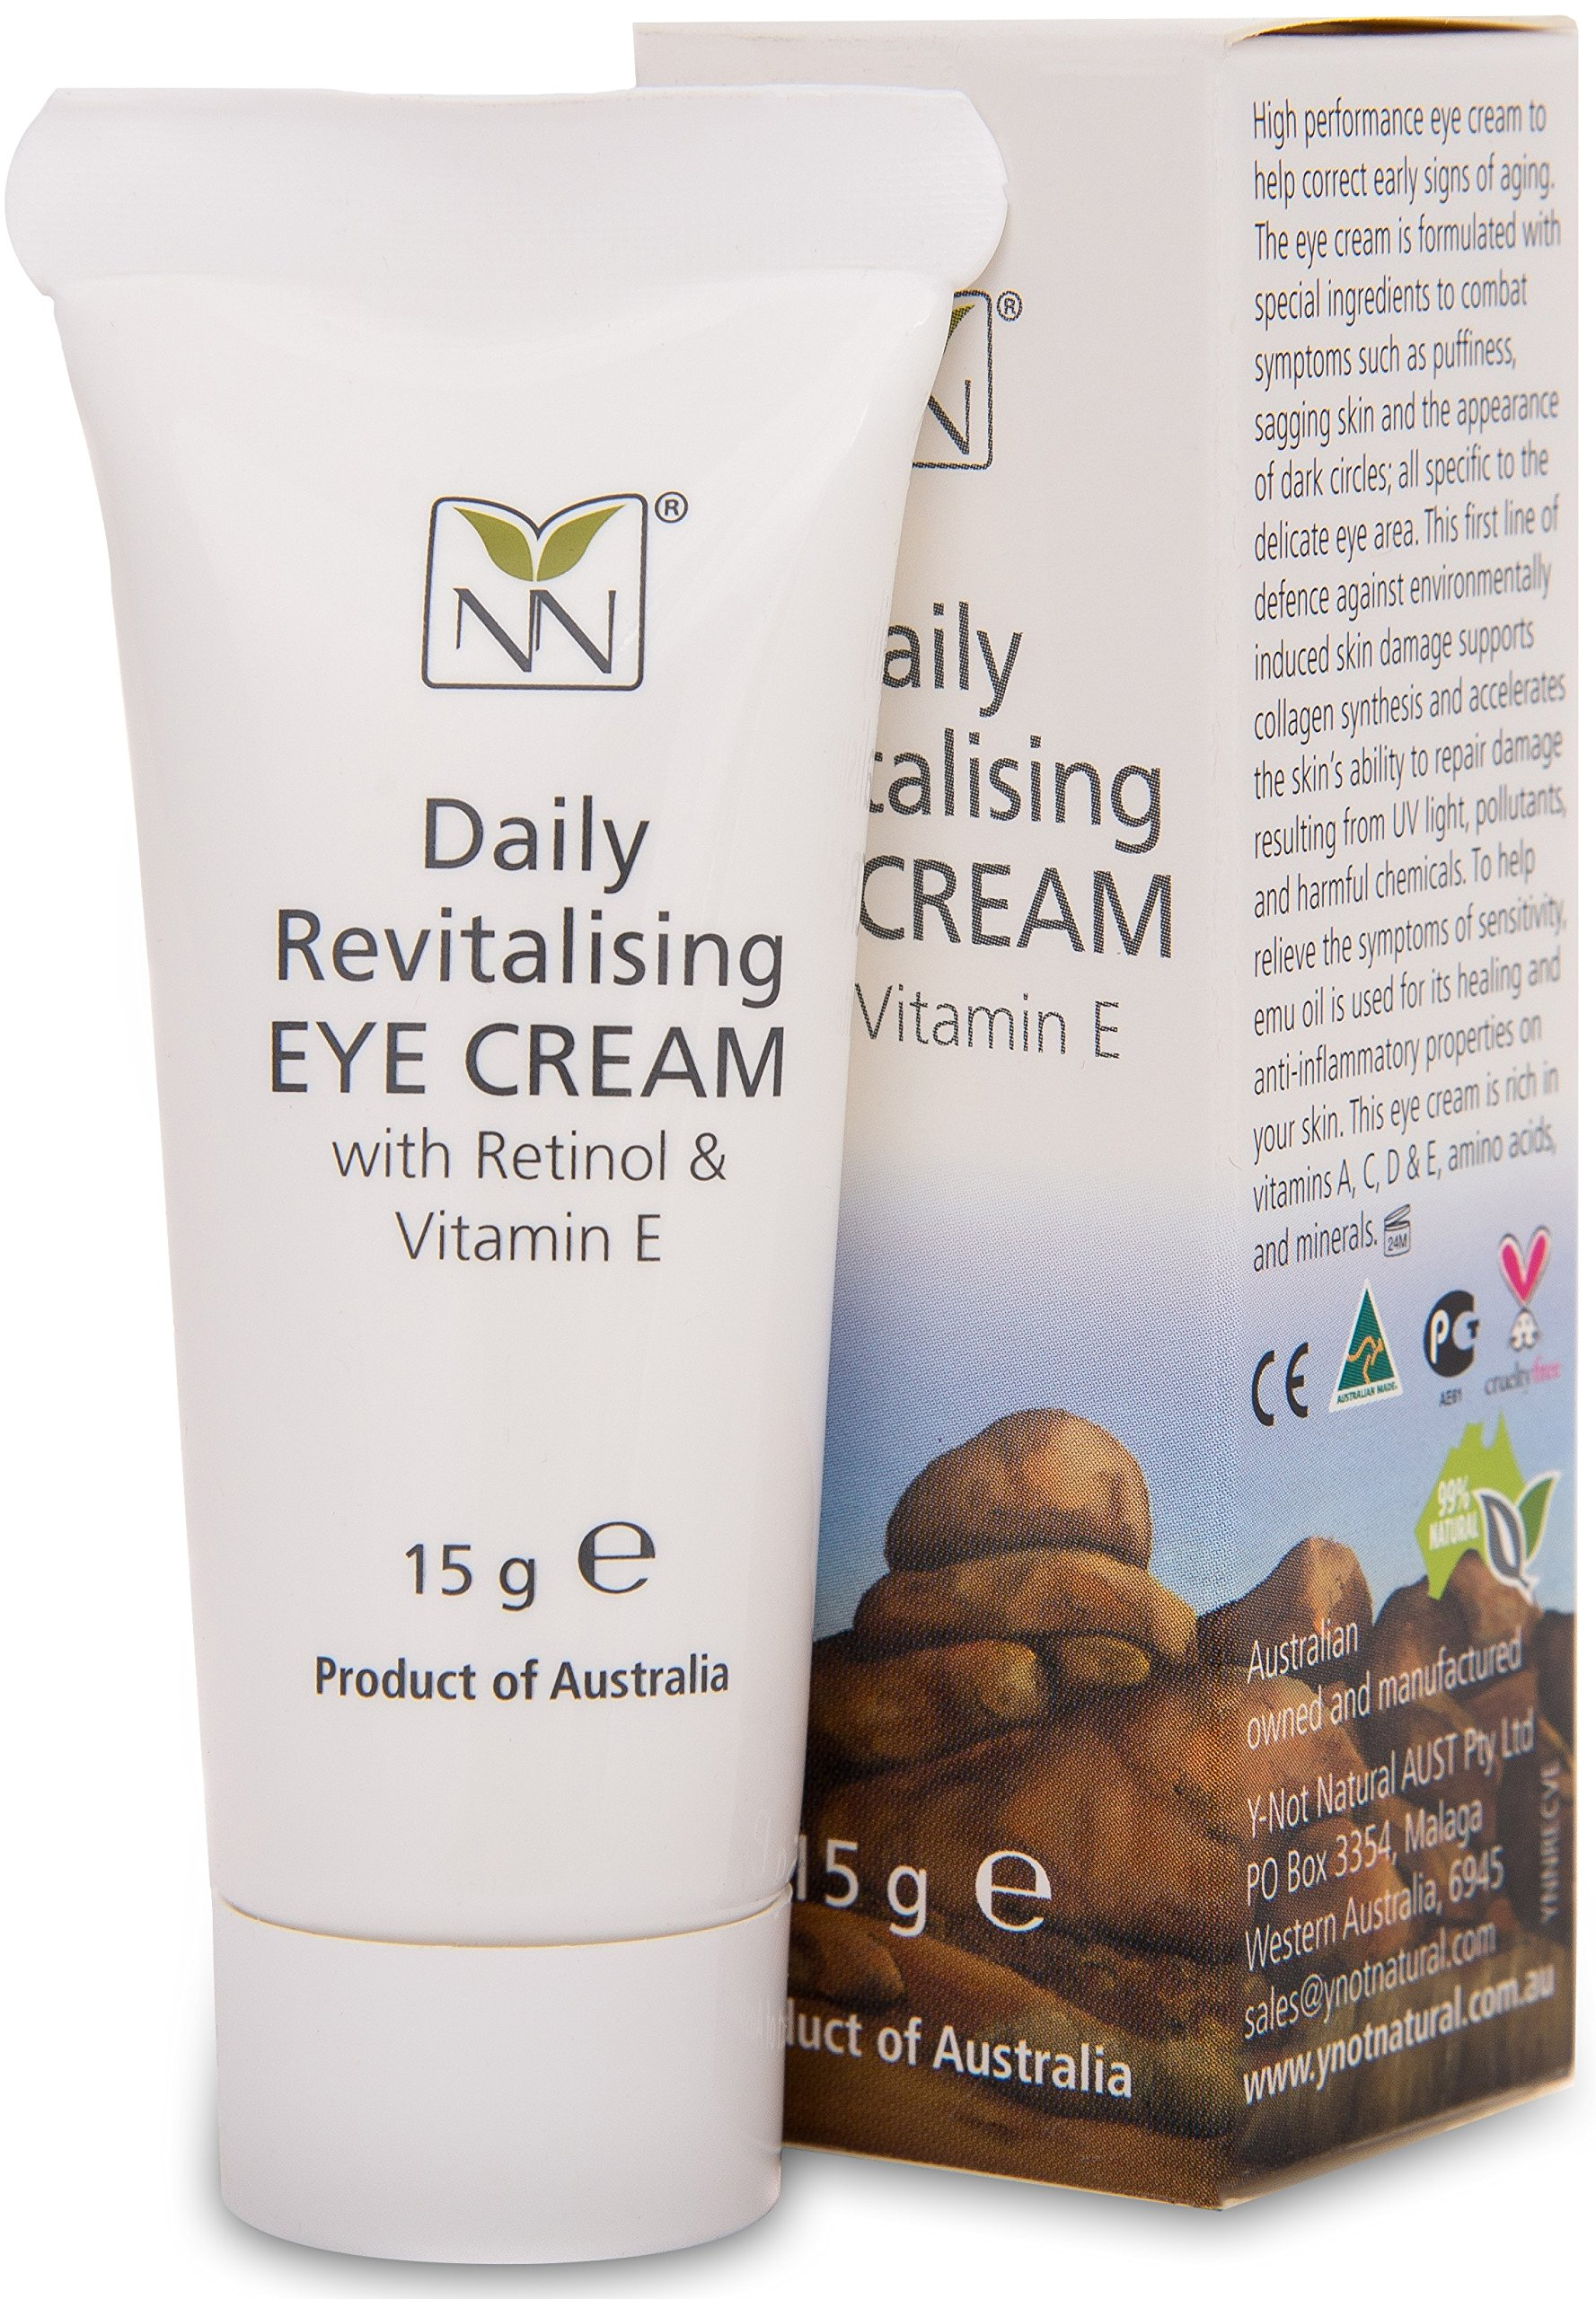 99% Natural Anti Aging Eye Cream with Australian Emu, Retinol, and Vitamin E | The Ultimate Anti-Aging Eye Cream for Wrinkle Reduction and Under eye bags!